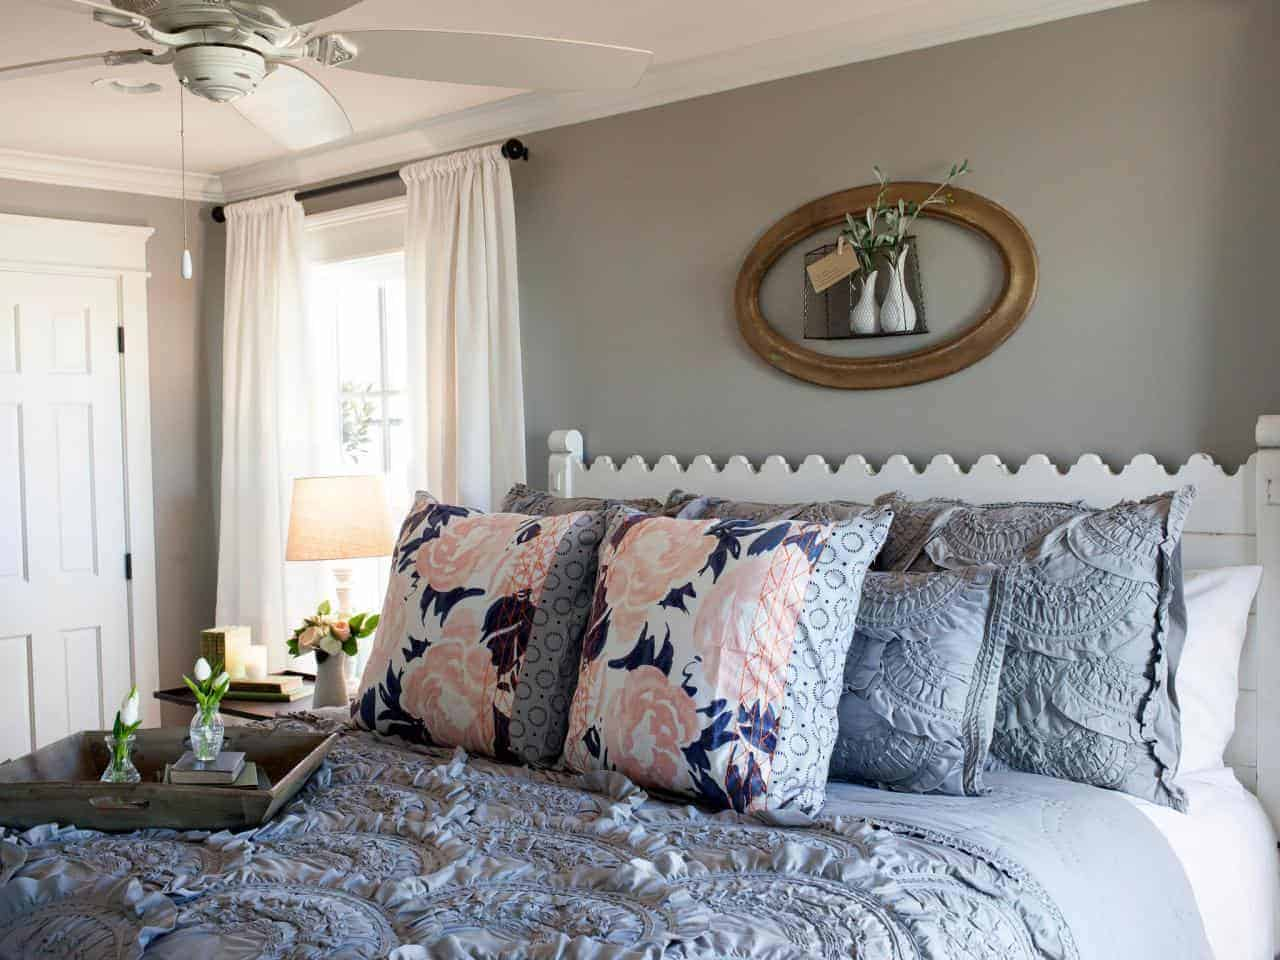 Joanna Gaines Fixer Upper Style Recreate Her Bedroom